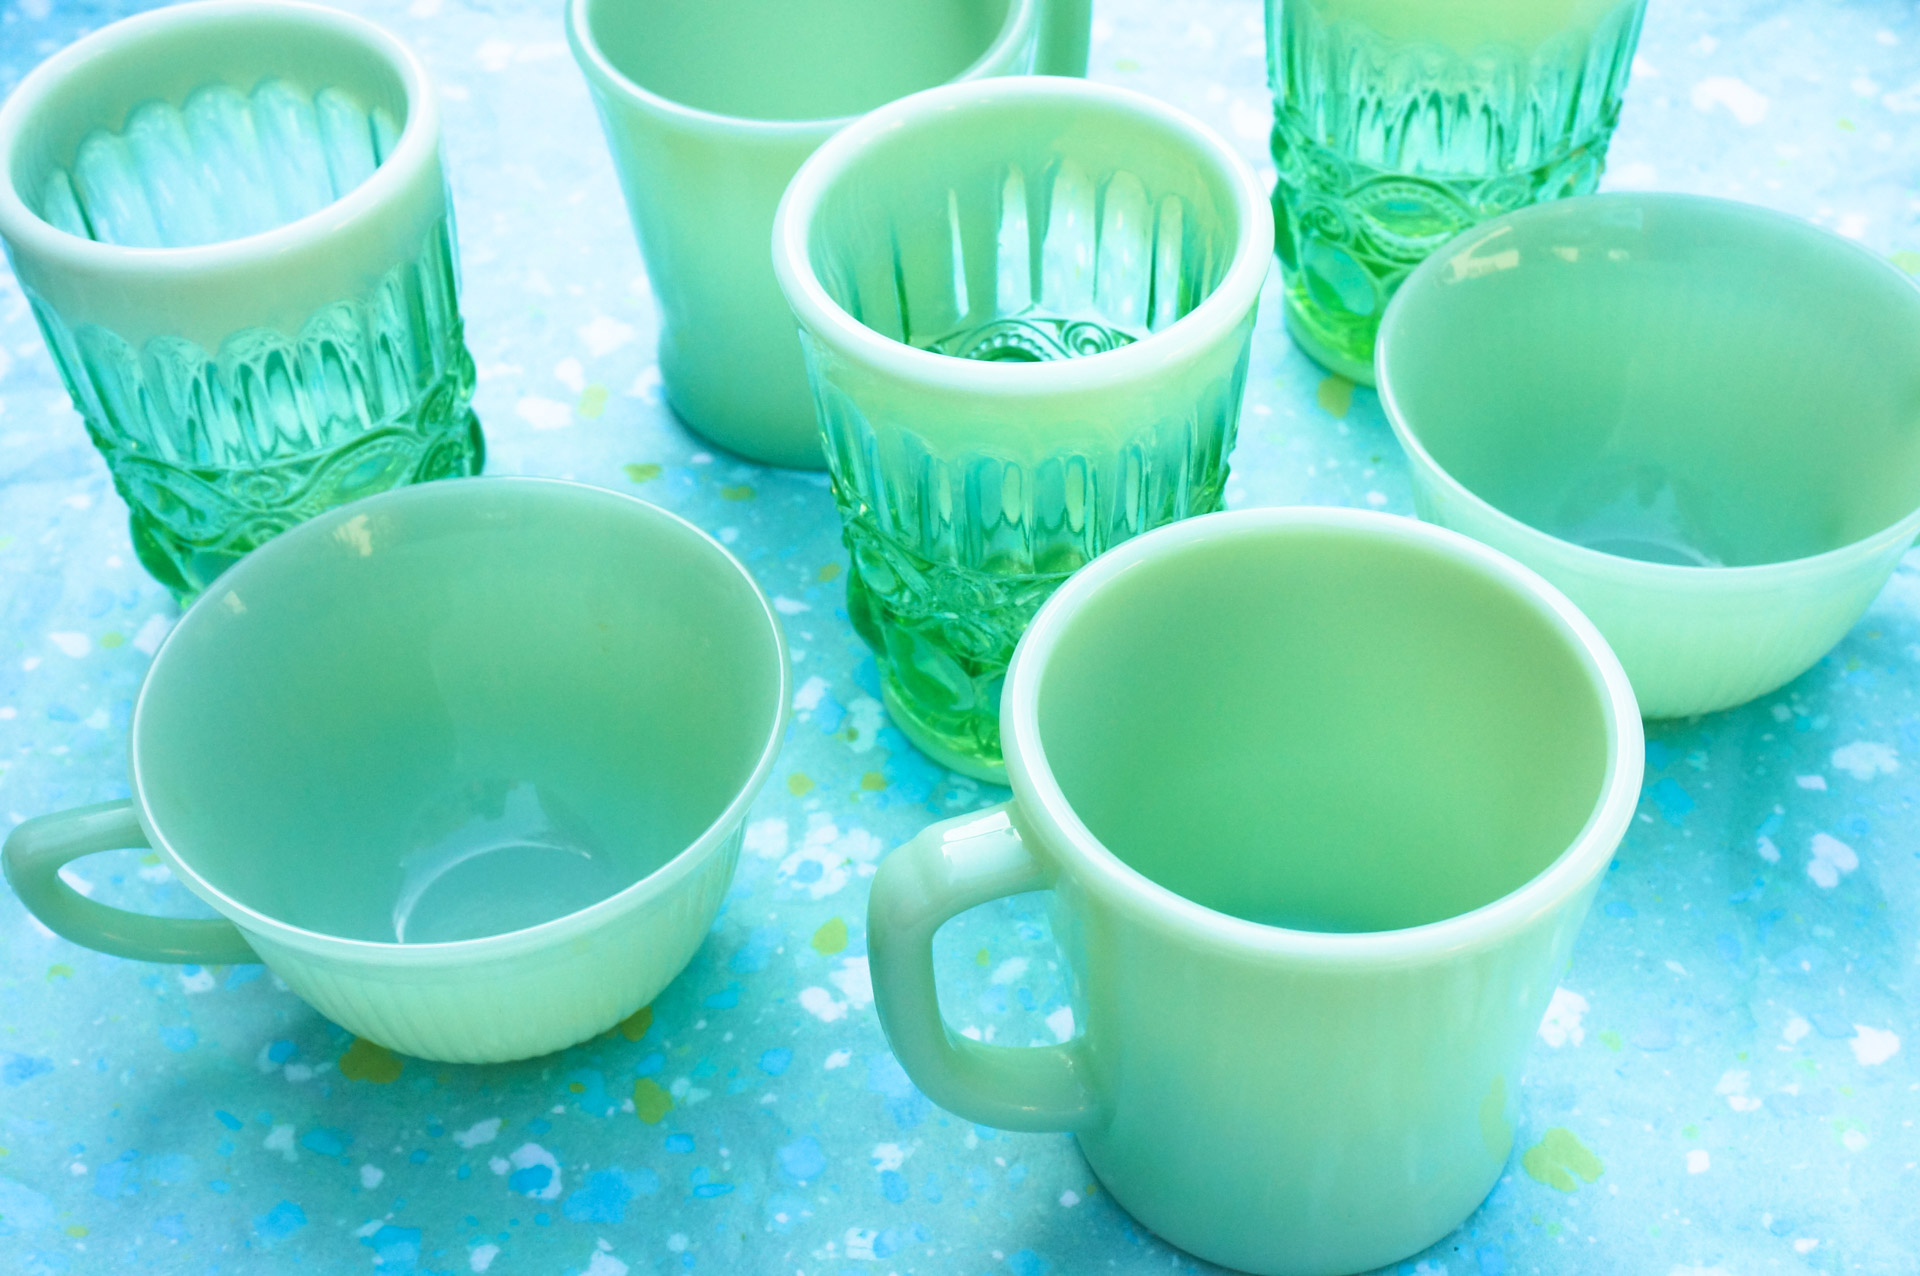 Jadeite mixed with glassware from Anthropologie